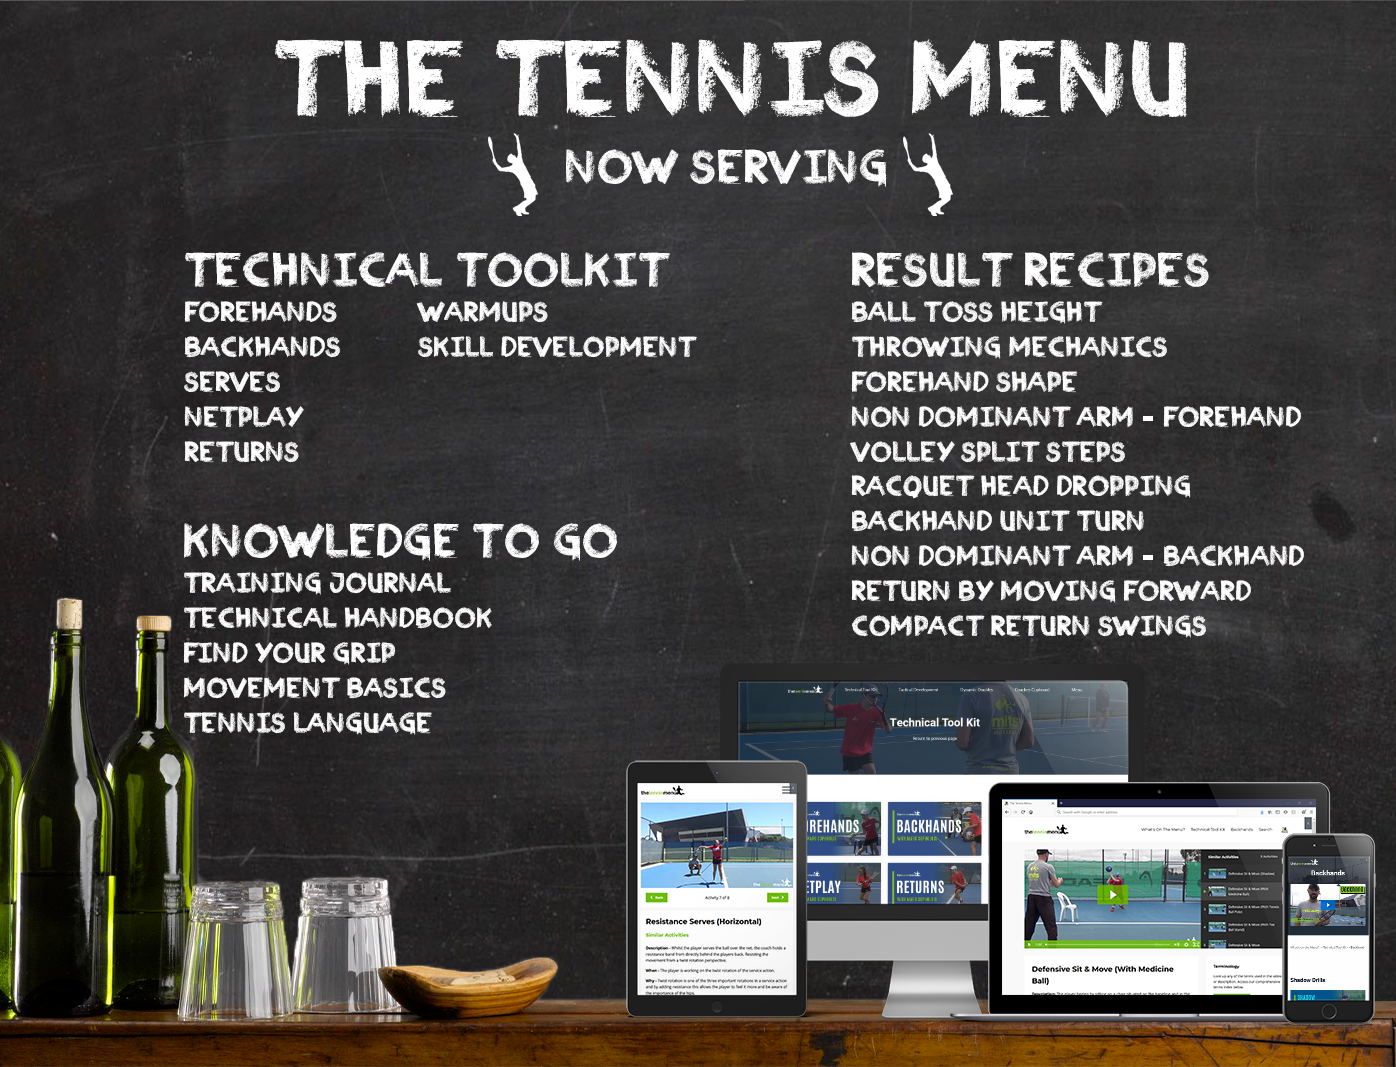 Now Serving - The Tennis Menu